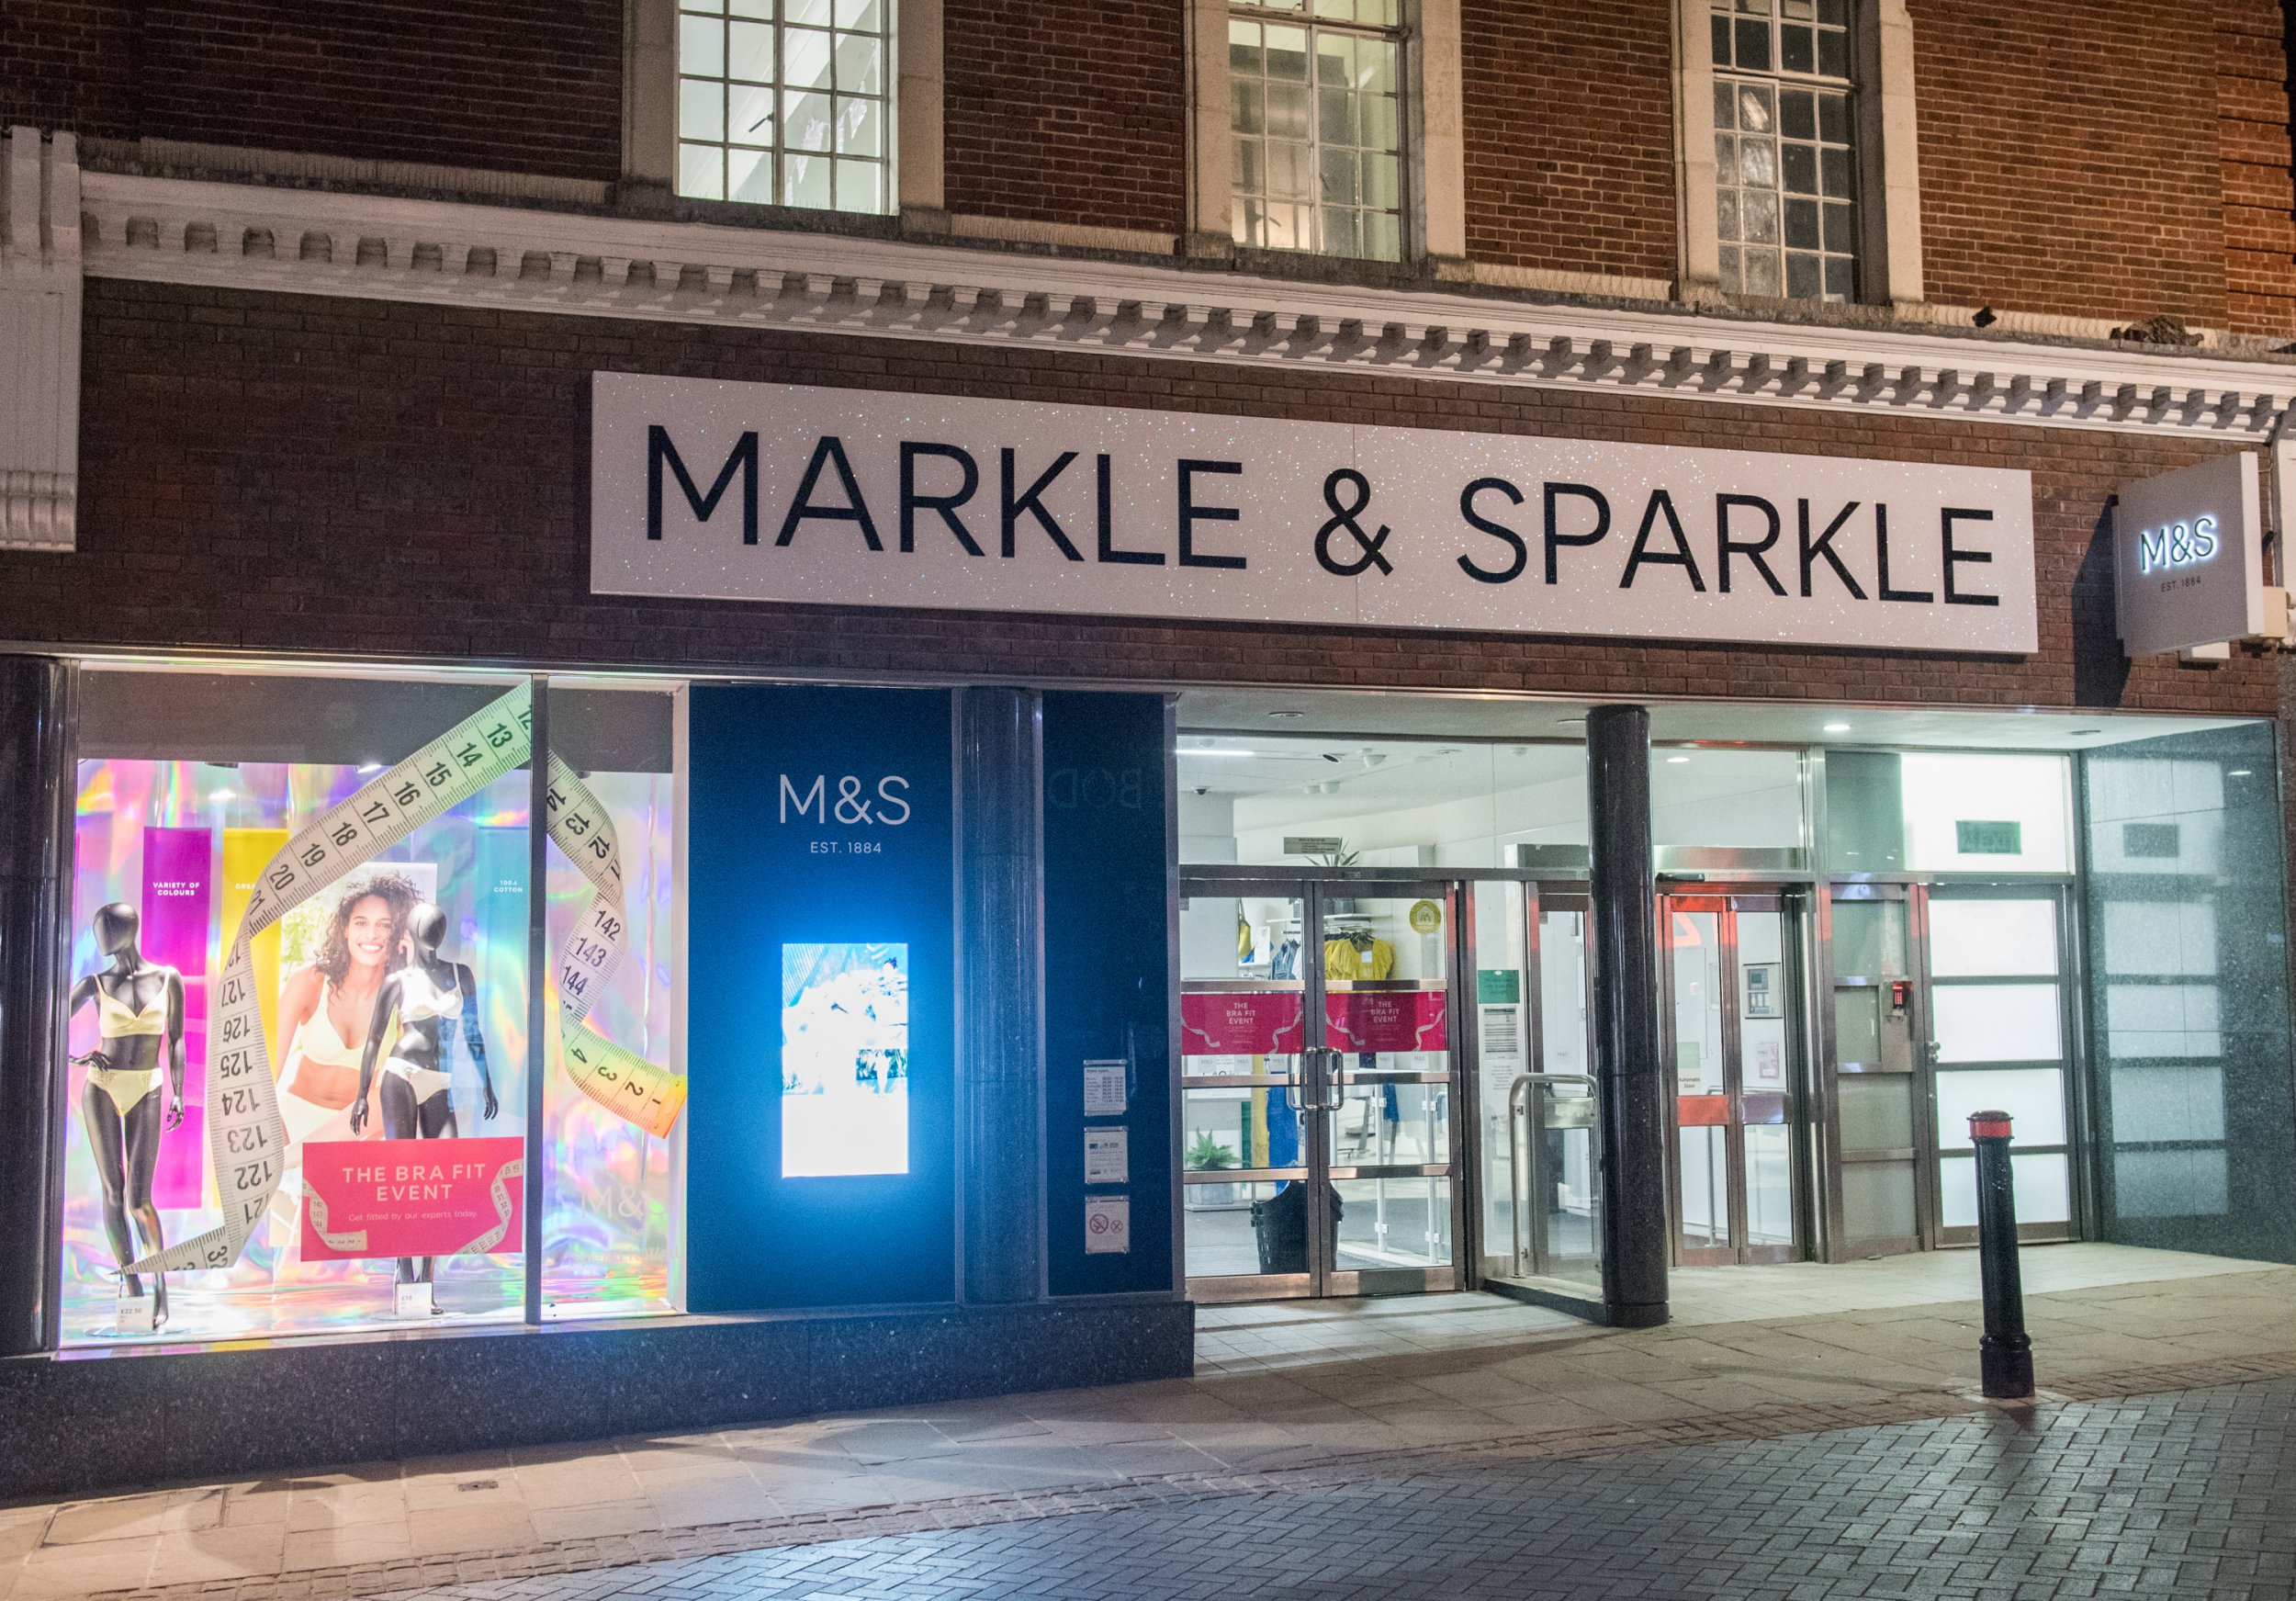 WINDSOR, ENGLAND - MAY 17: A Marks & Spencer store is seen with its name changed to 'Markle & Sparkle' ahead of the Royal wedding on May 17, 2018 in Windsor, England. Preparations continue in the town for the wedding between Prince Harry and Ms. Meghan Markle on May 19, 2018 when tens of thousands of well wishers will descend on the town just west of London to celebrate the couple's big day. (Photo by Samir Hussein/Samir Hussein/WireImage)